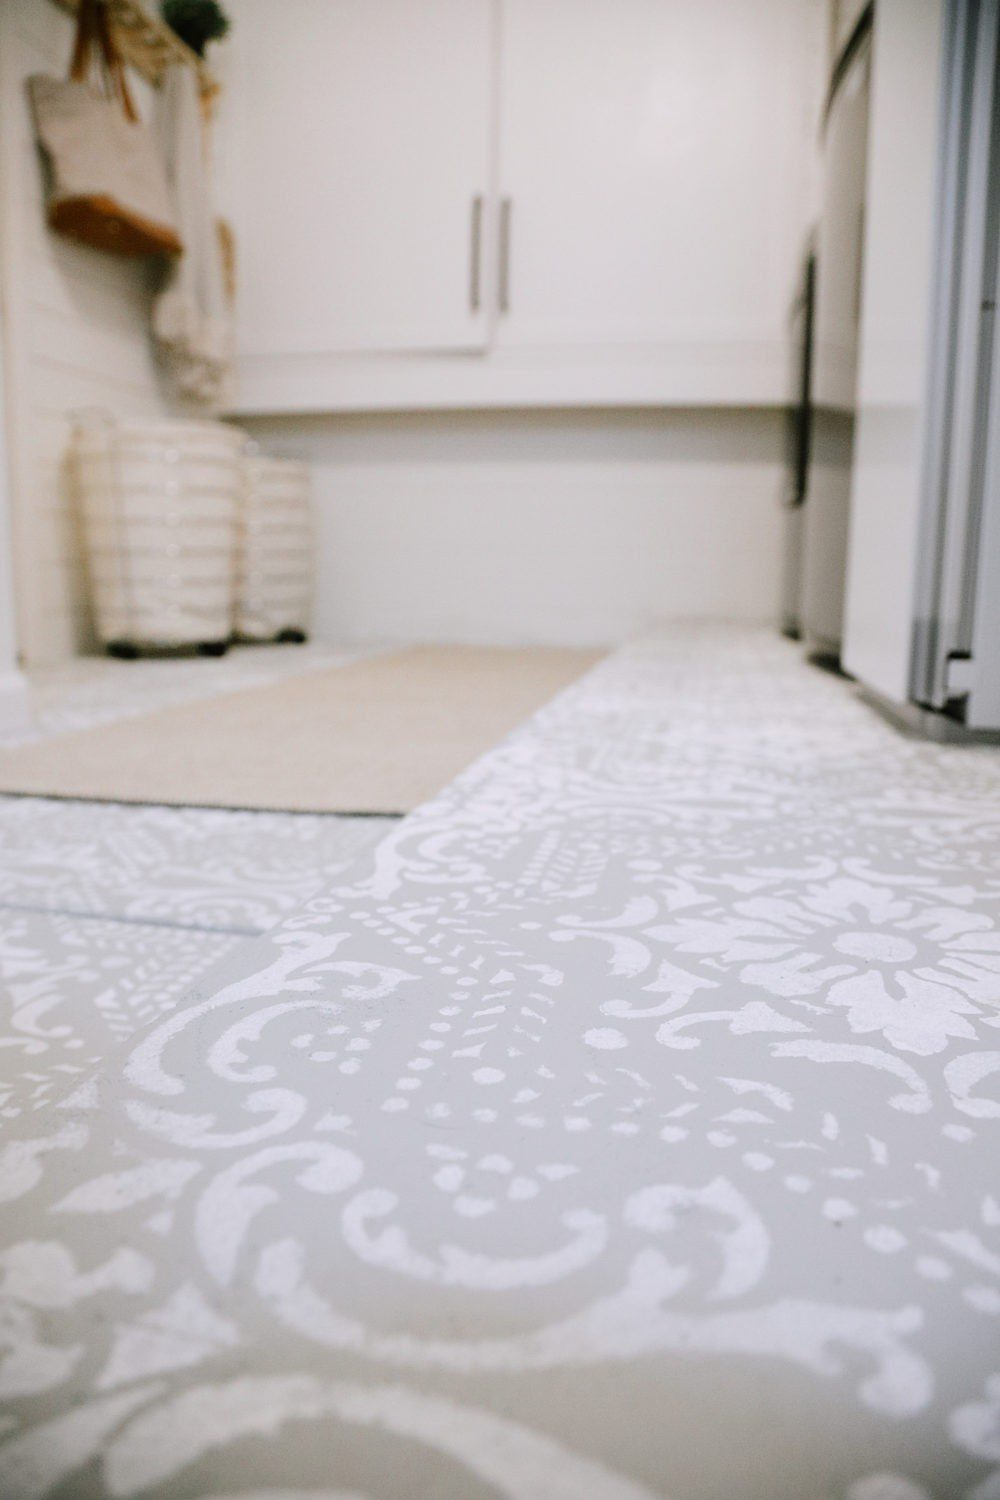 How We Designed a Family Friendly Laundry Room in our Garage - The Reveal! Stenciled floors, DIY covers for breaker boxes and utilities, large capacity appliances, organization tips and more! | Laundry Room DIY: How to Paint a Cement Floor with Stencils by popular home decor blog, Fresh Mommy: image of painted cement floor.